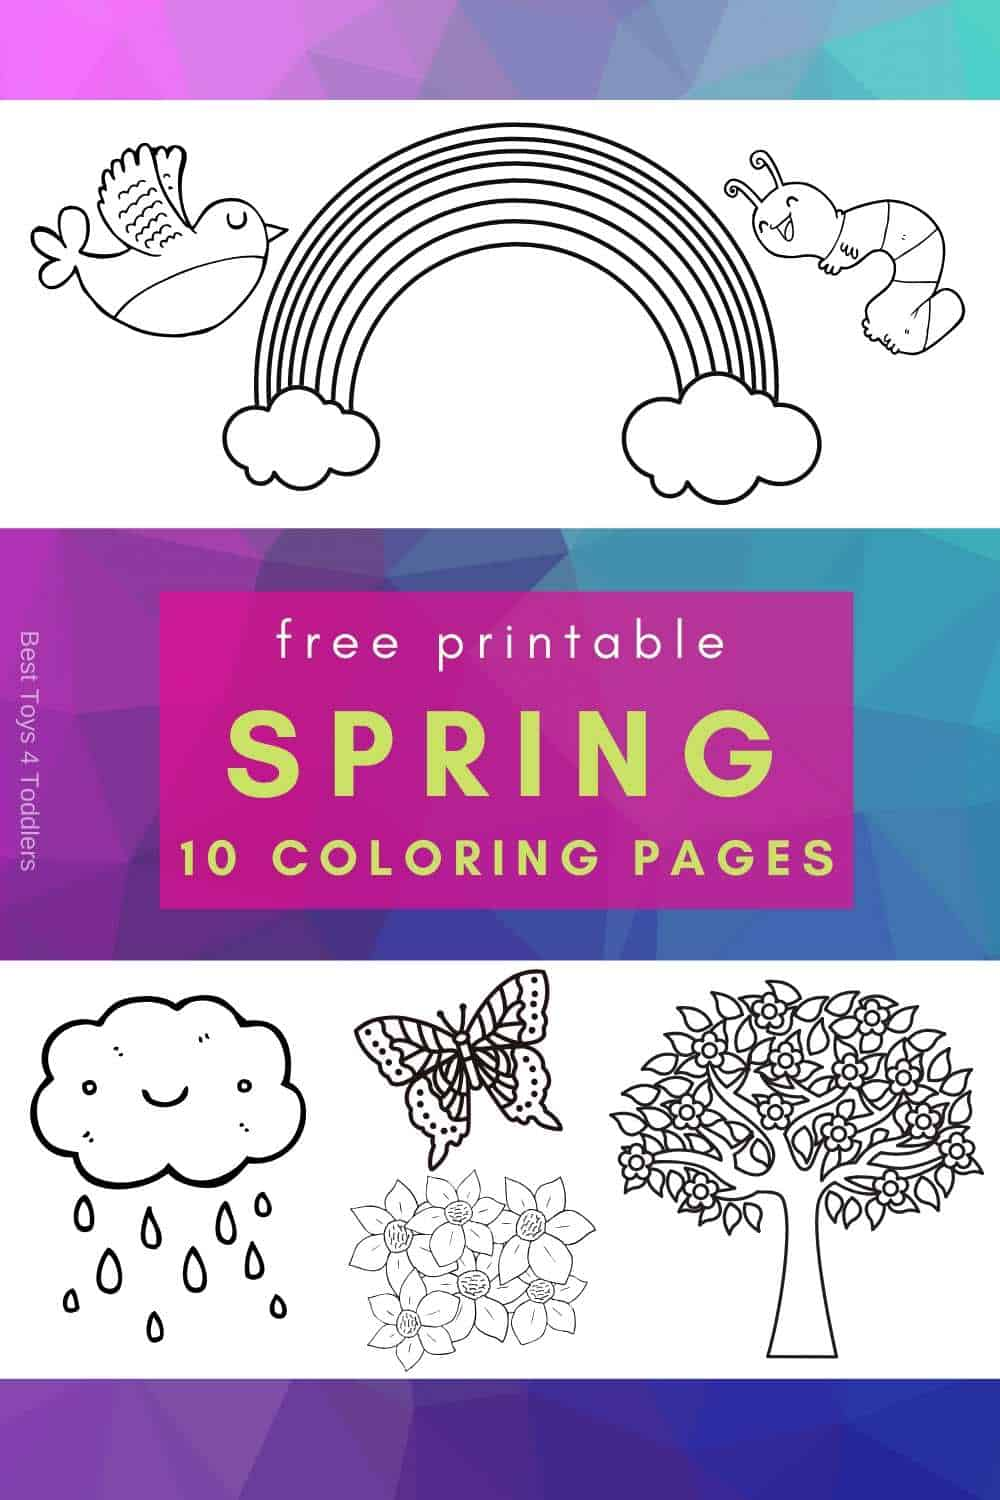 Free Printable Blues Clues Coloring Pages For Kids | 1500x1000